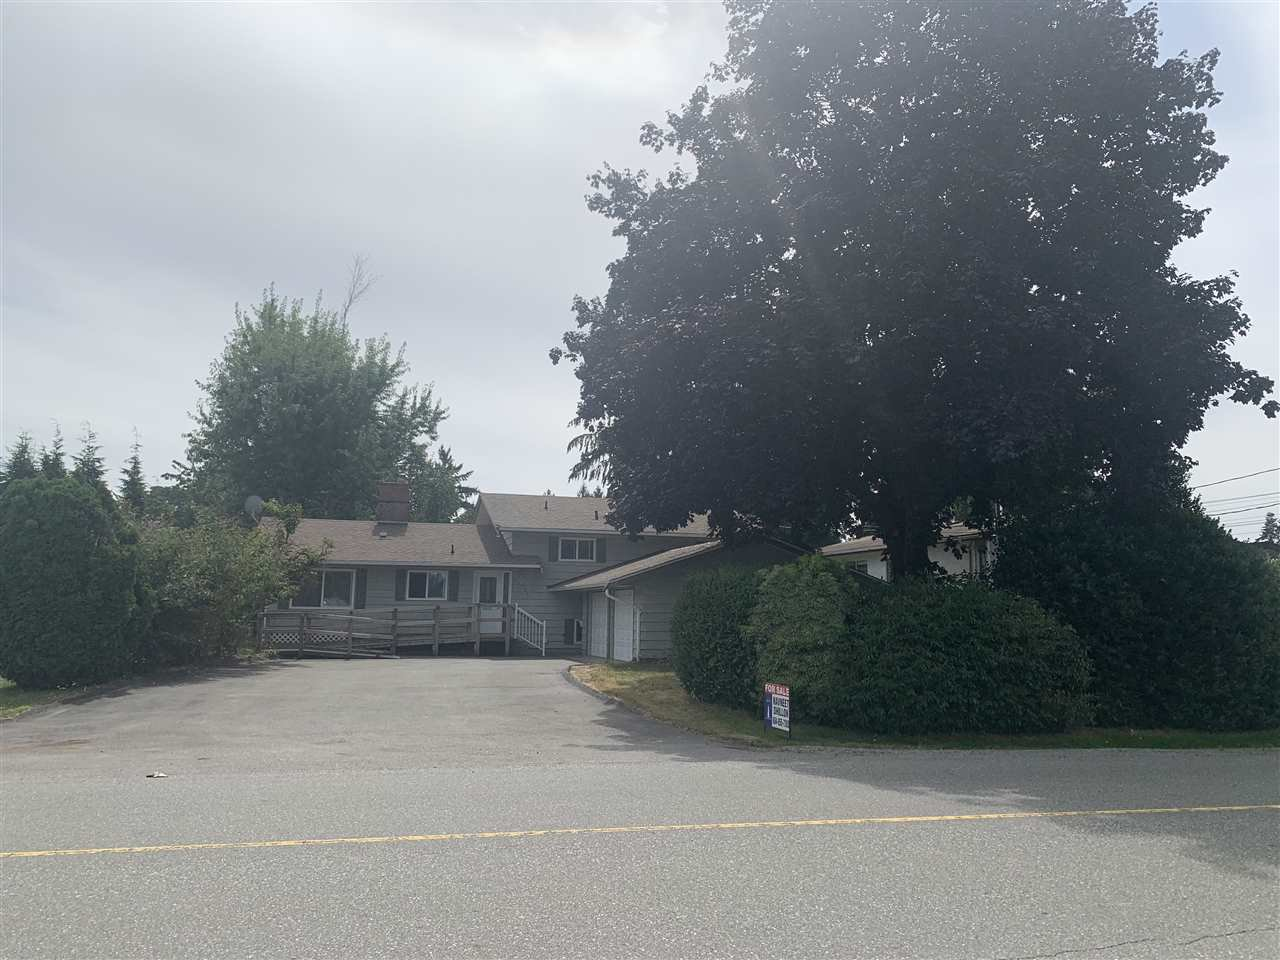 Main Photo: 33104 BRUNDIGE Avenue in Abbotsford: Central Abbotsford House for sale : MLS®# R2486217